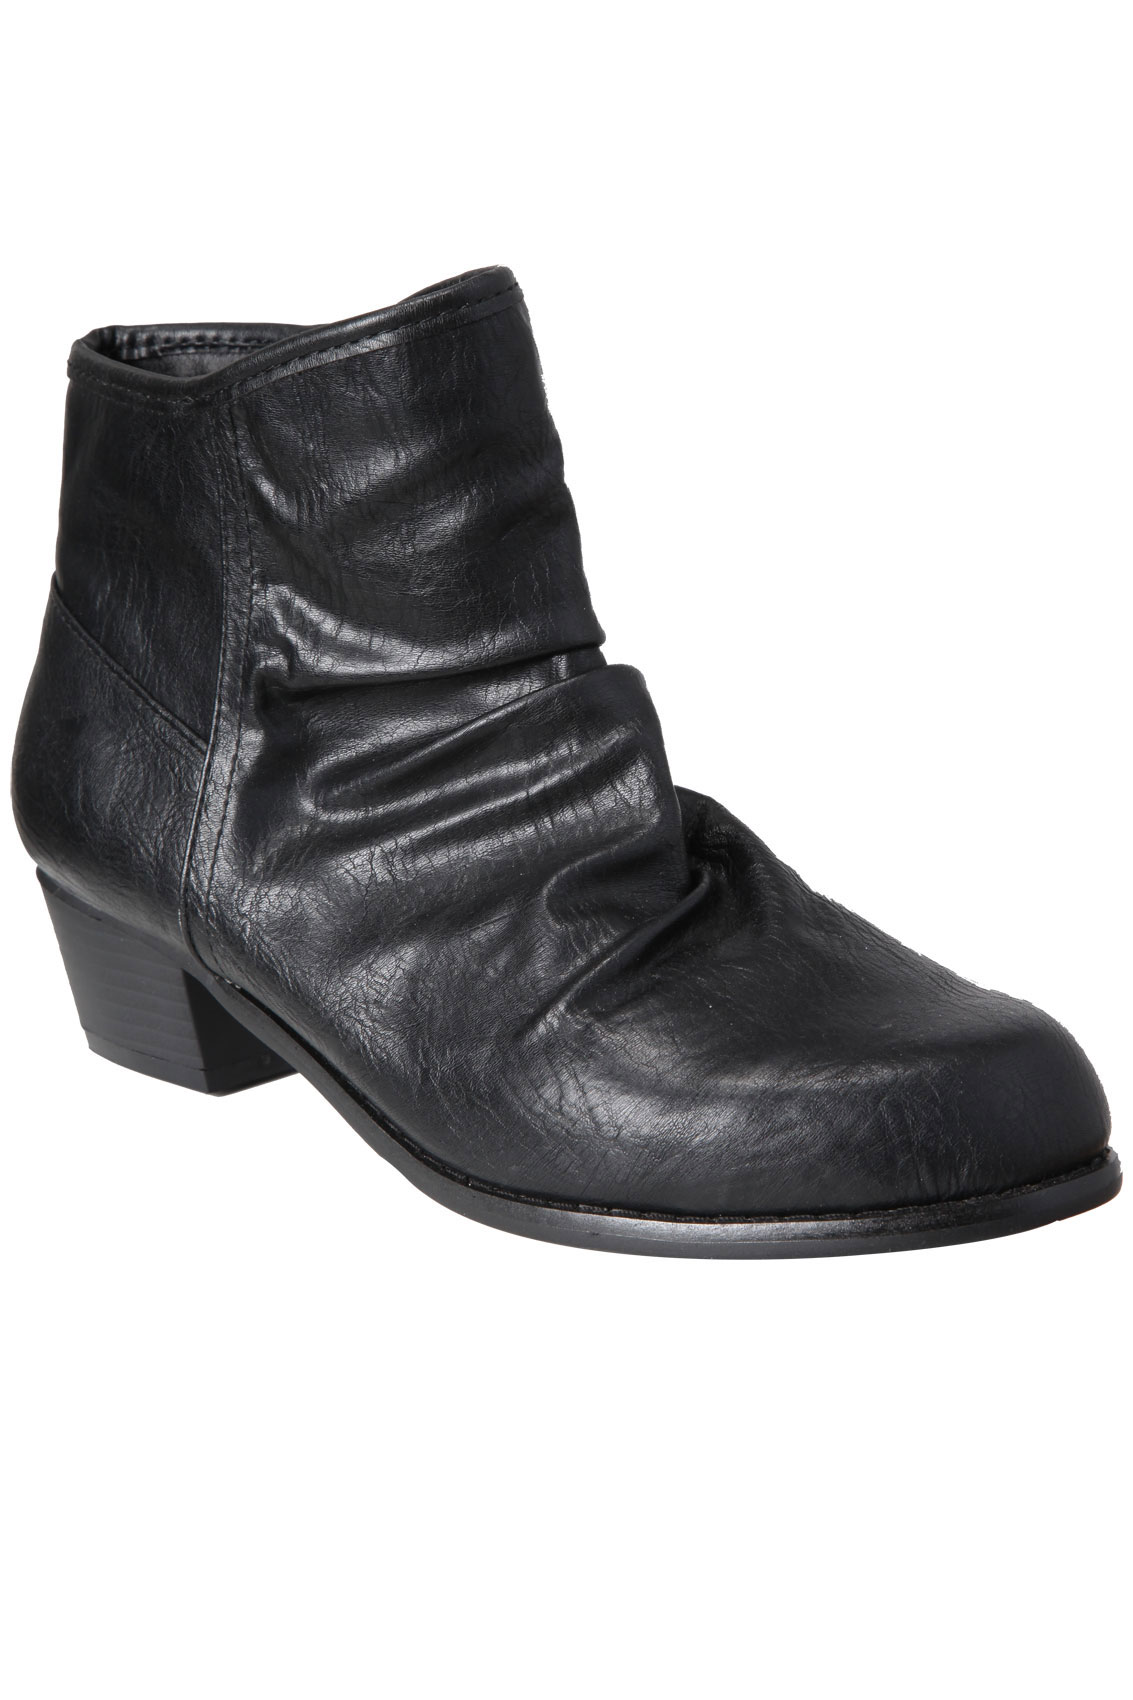 black ruched ankle boots with side zip in eee fit 4eee